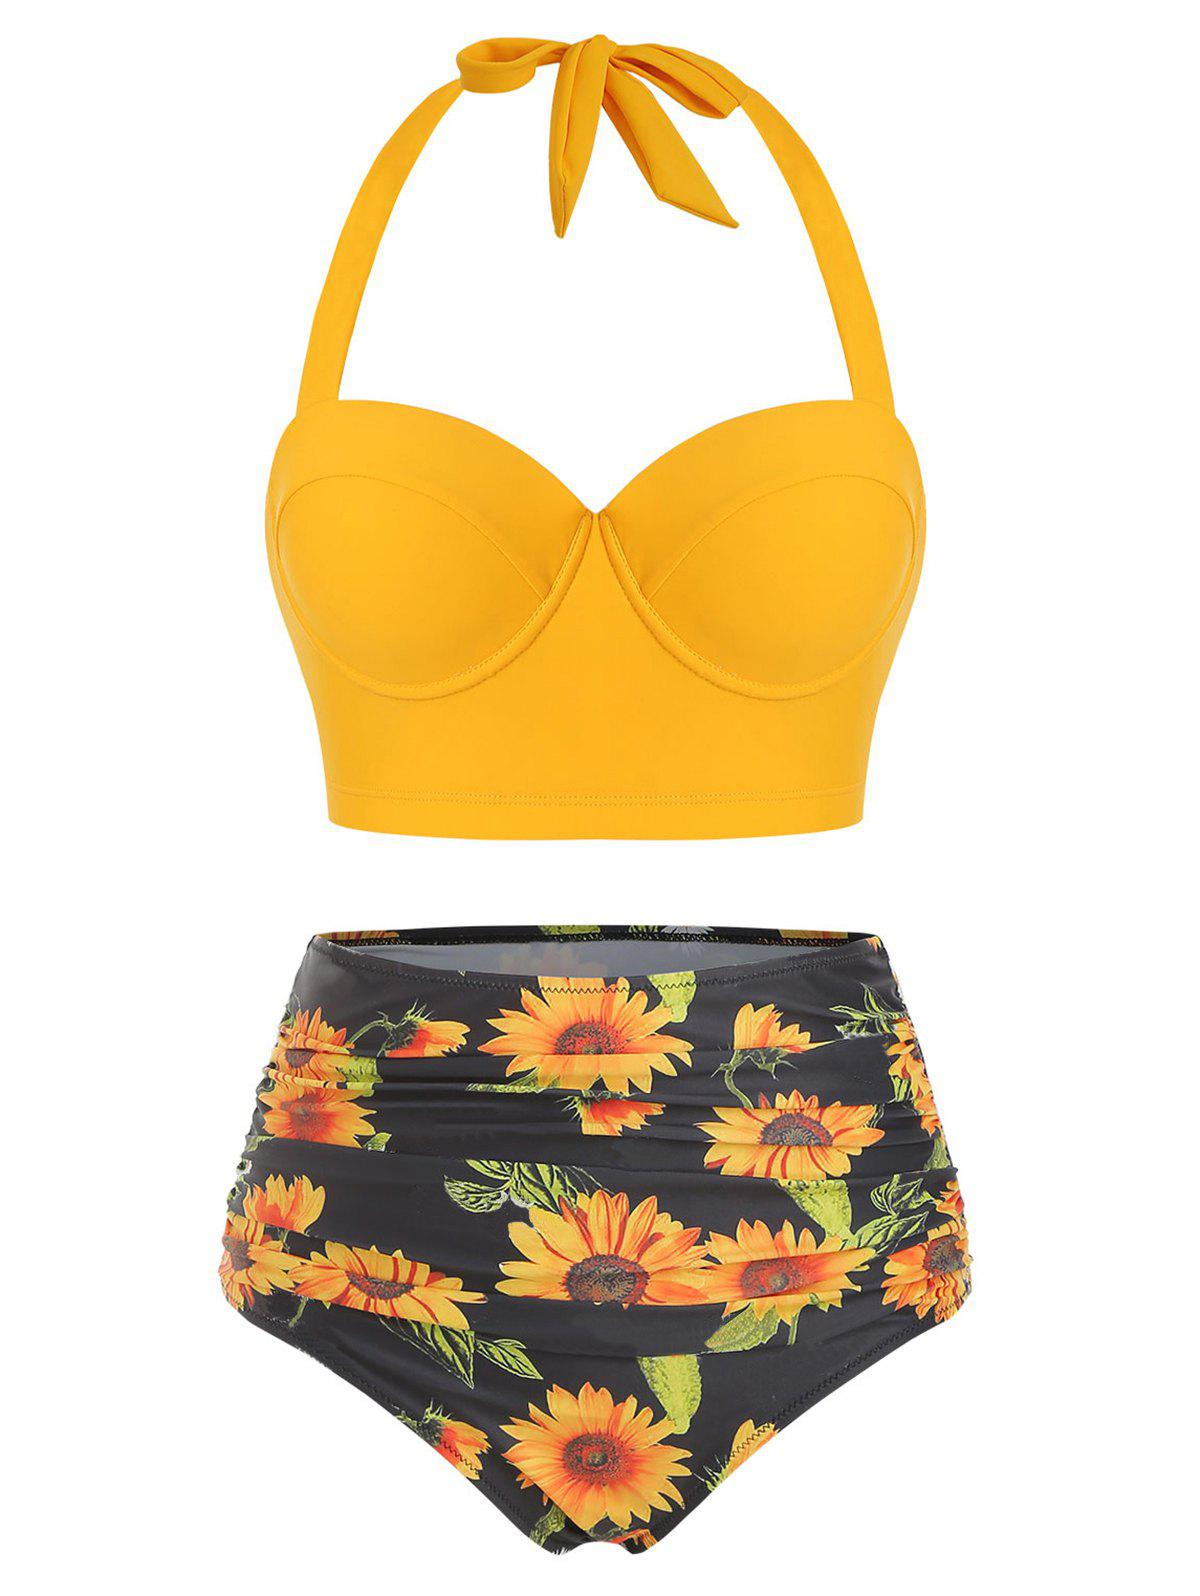 Fancy Sunflower Print Underwire Halter Bikini Swimsuit